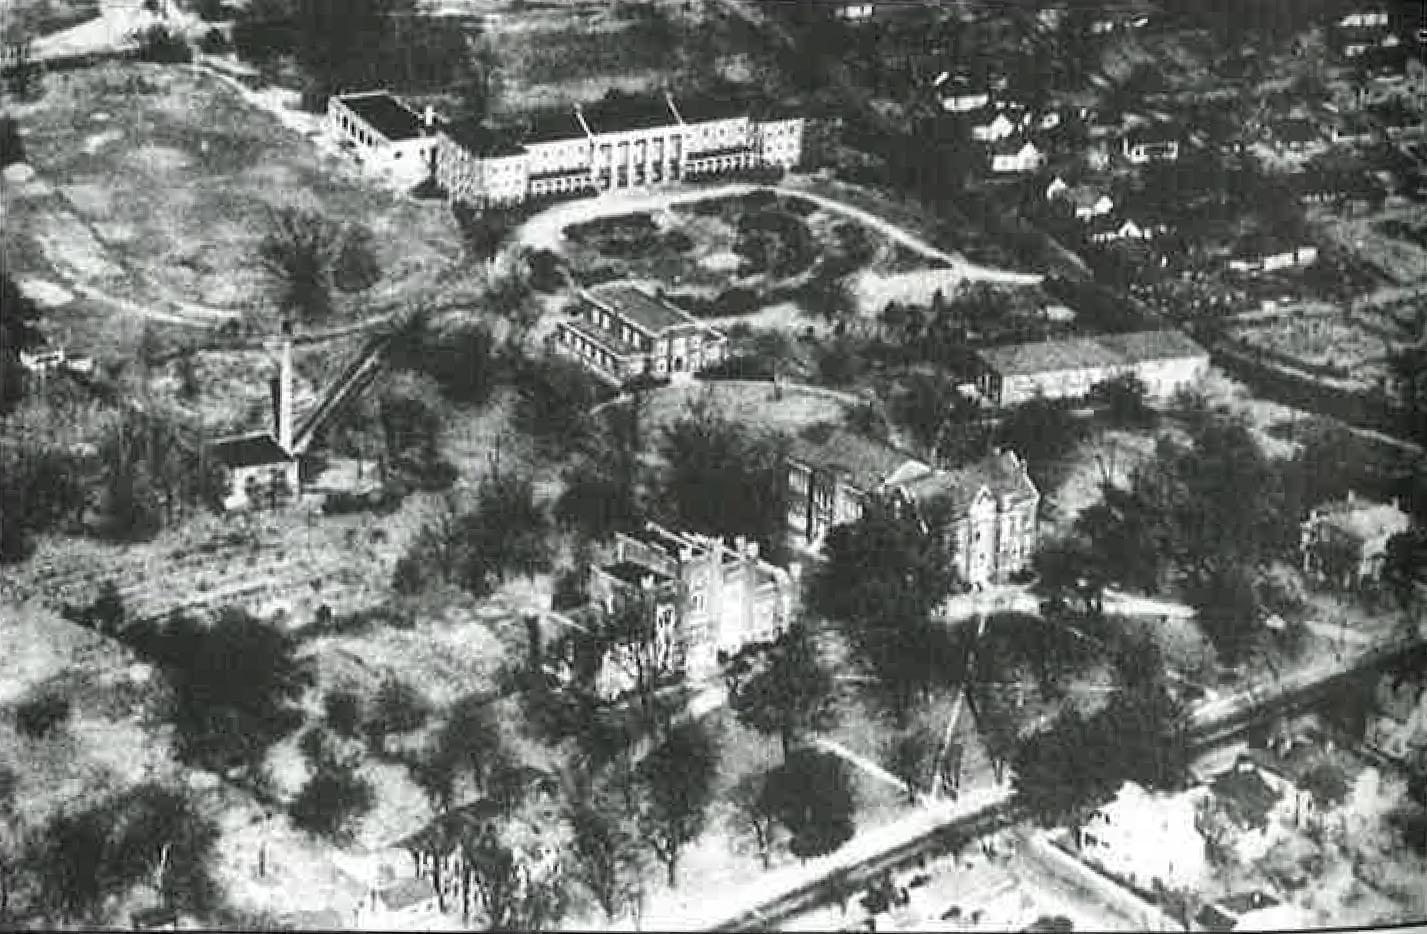 Harned Hall, pictured top middle, is the only building still standing from this aerial image circa 1935.